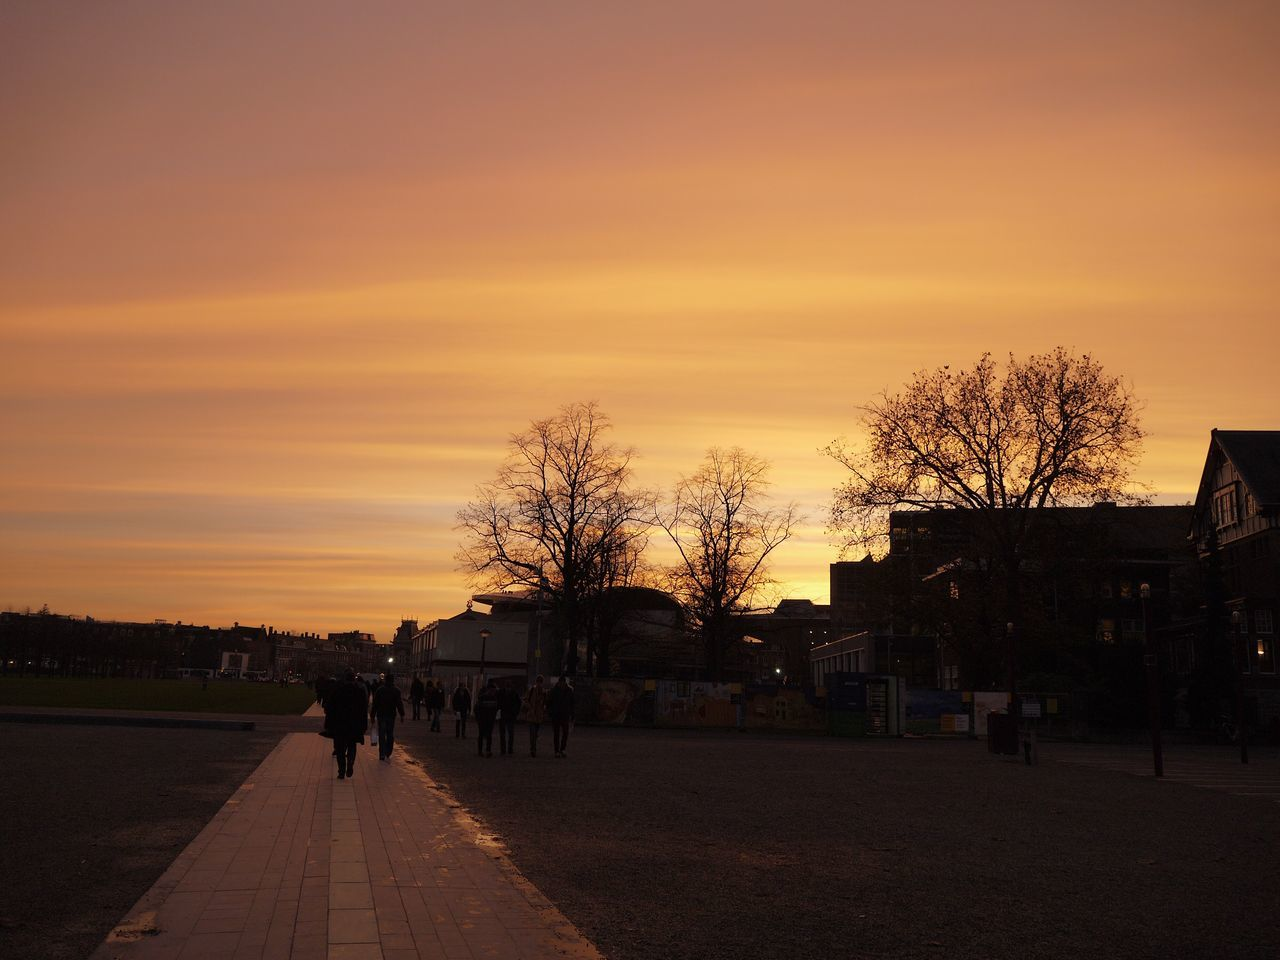 sunset, silhouette, built structure, tree, walking, sky, building exterior, outdoors, architecture, bare tree, road, real people, beauty in nature, nature, city, day